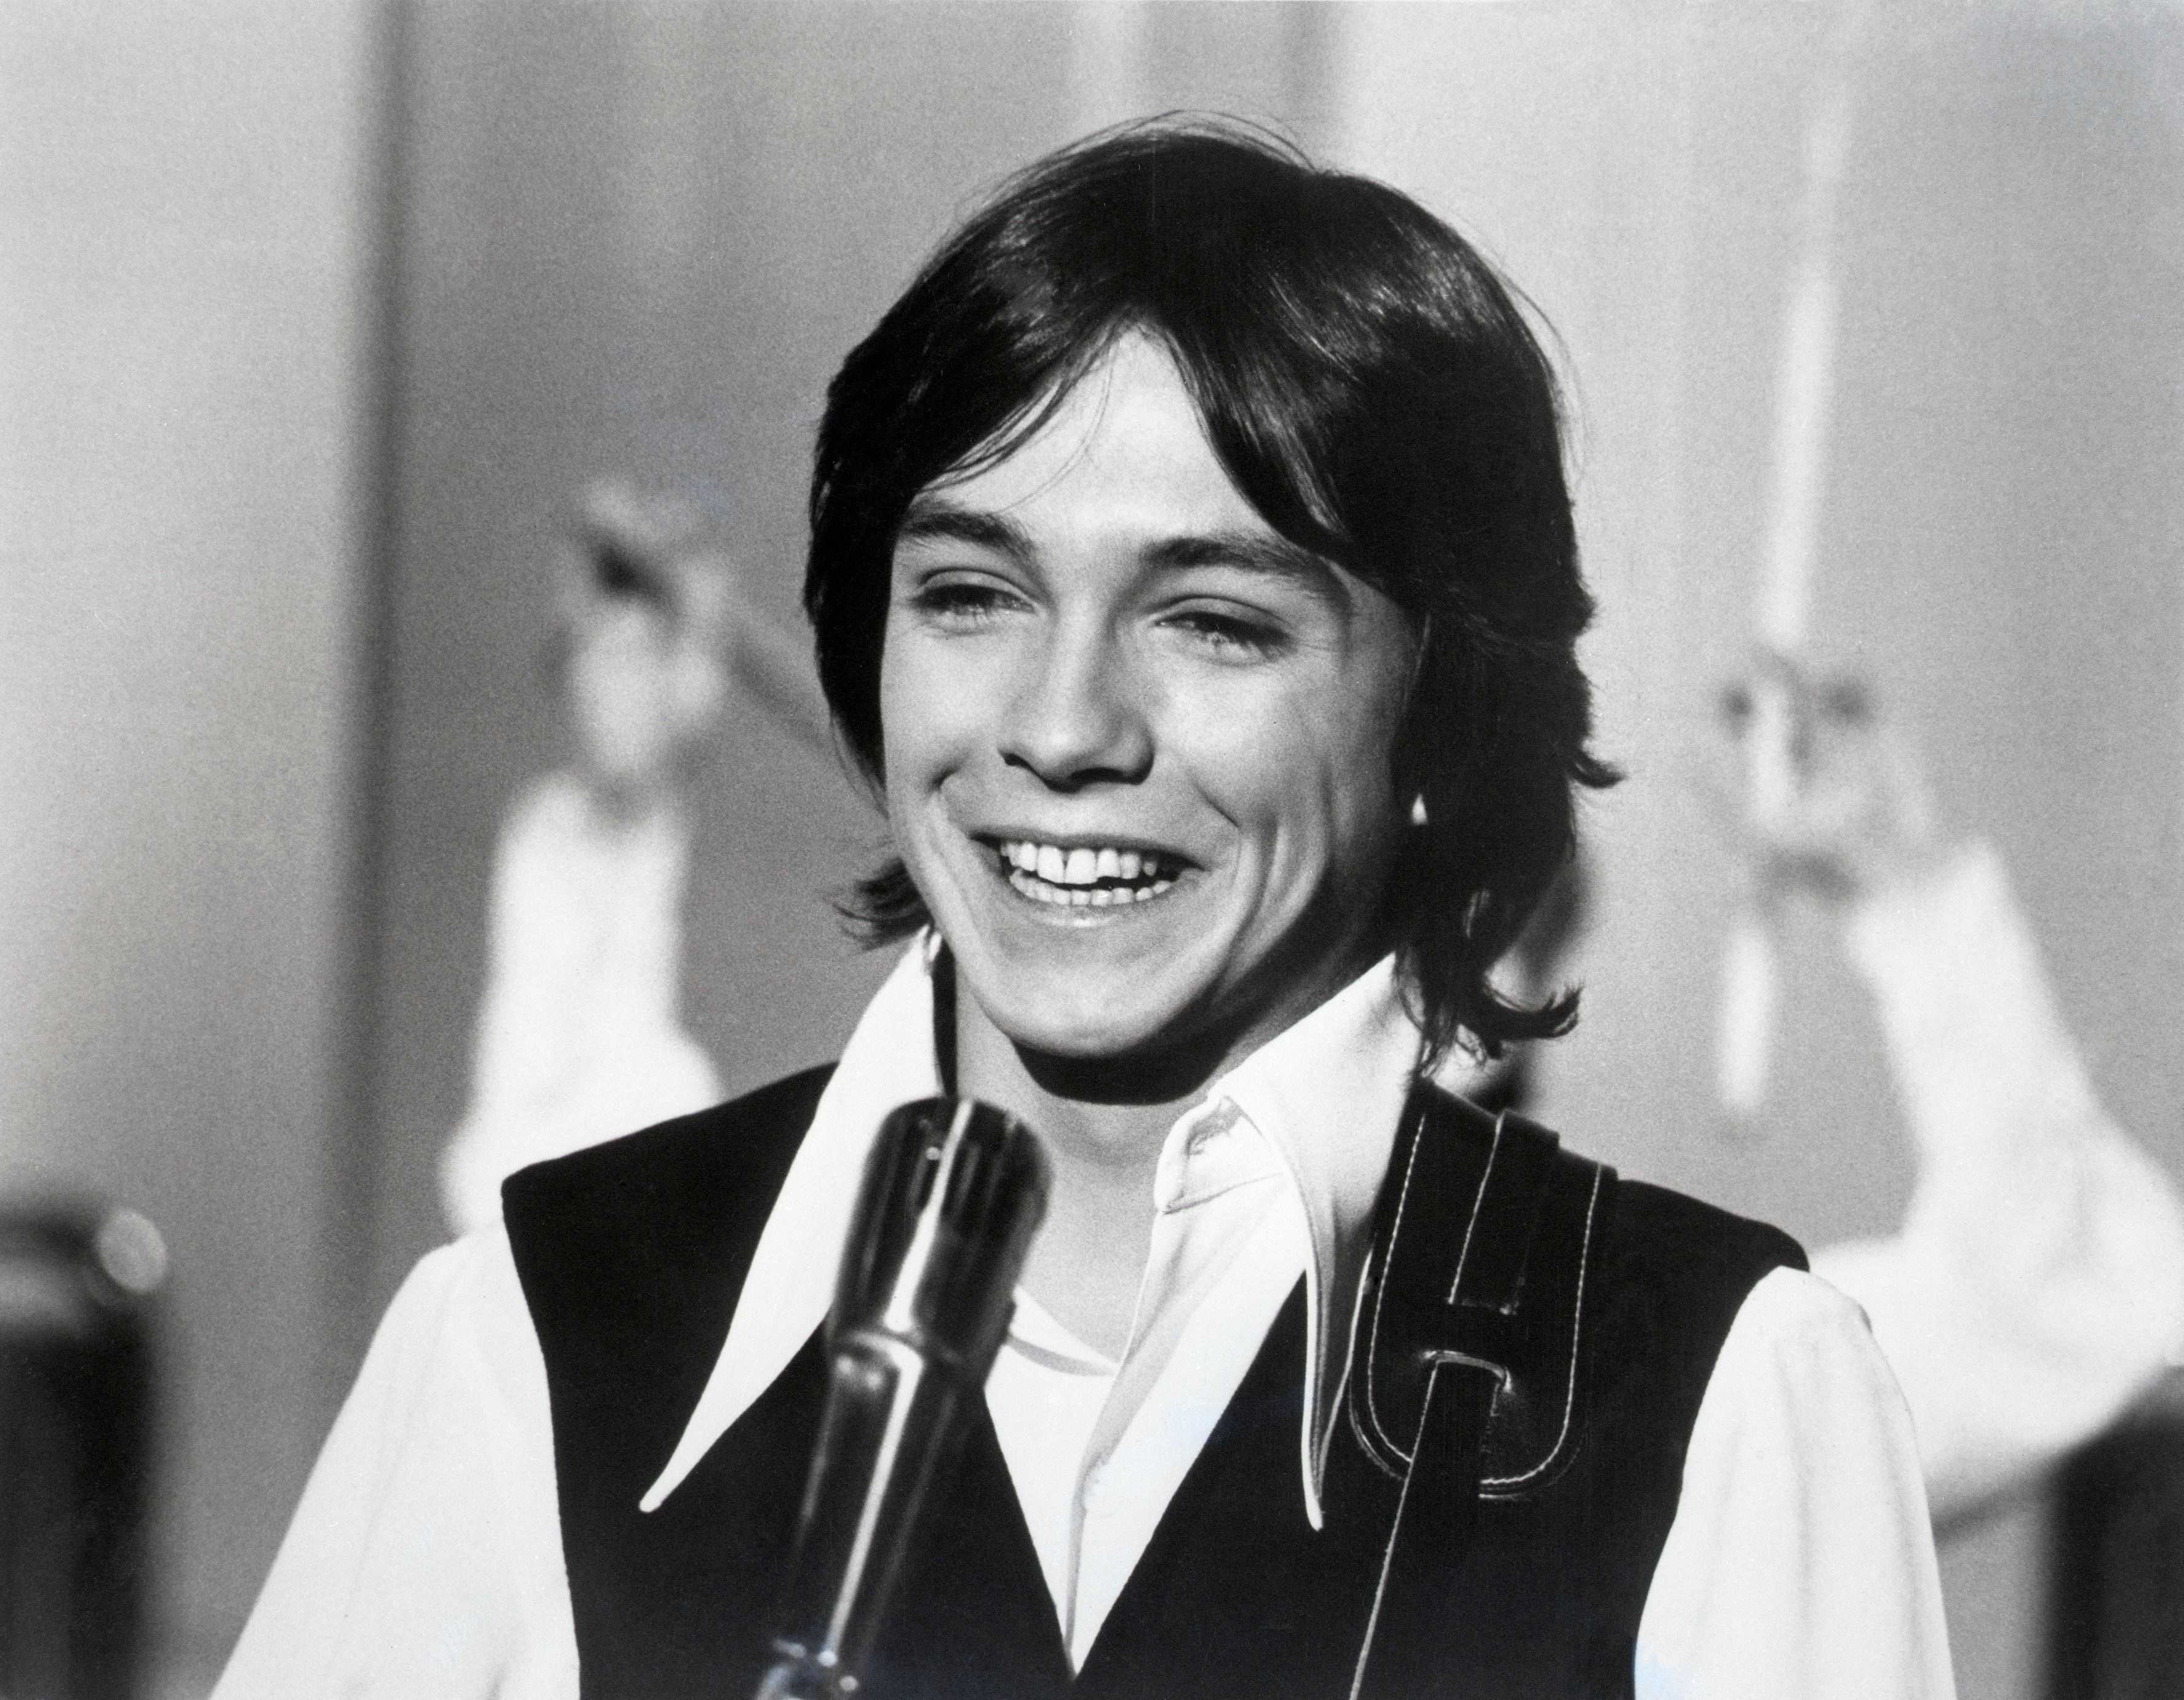 David Cassidy: Partridge Family star dies aged 67